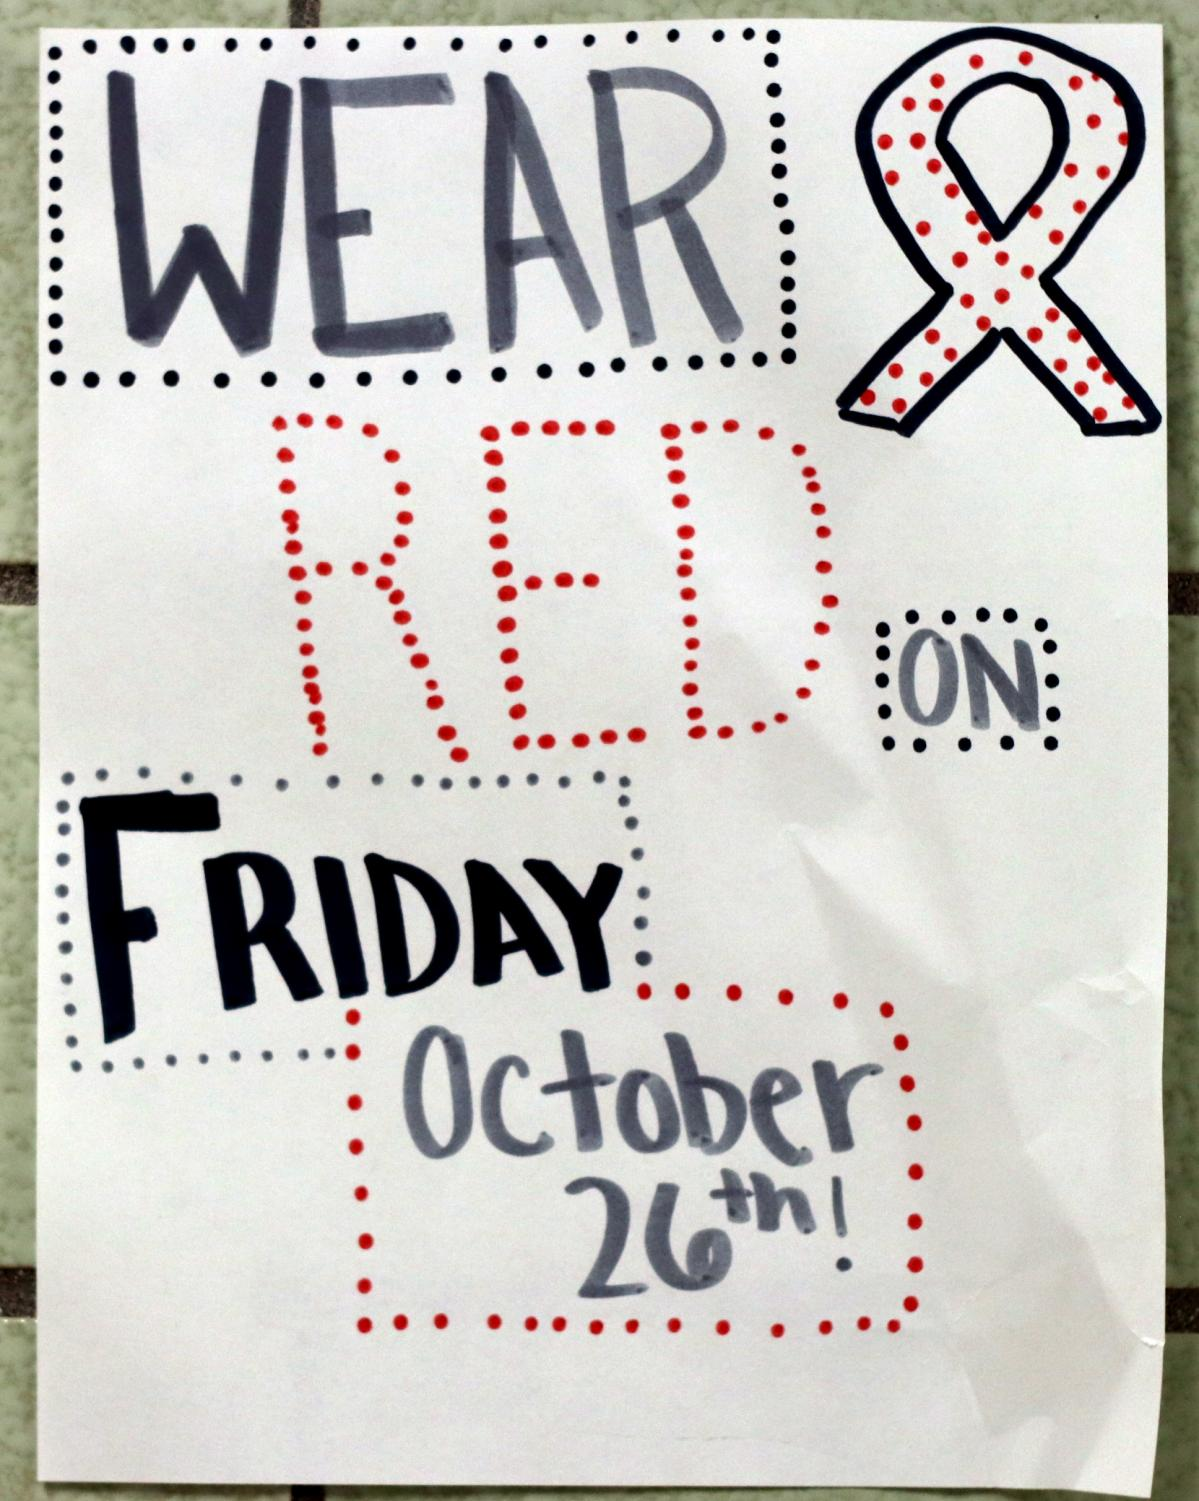 """Students are encouraged to wear red on October 26th for Red Ribbon Week. It is one of the oldest and largest drug-prevention programs. """"Red ribbon week is about telling teens that their life is worth more than being controlled by the addiction of drugs,"""" said Zirnheld."""